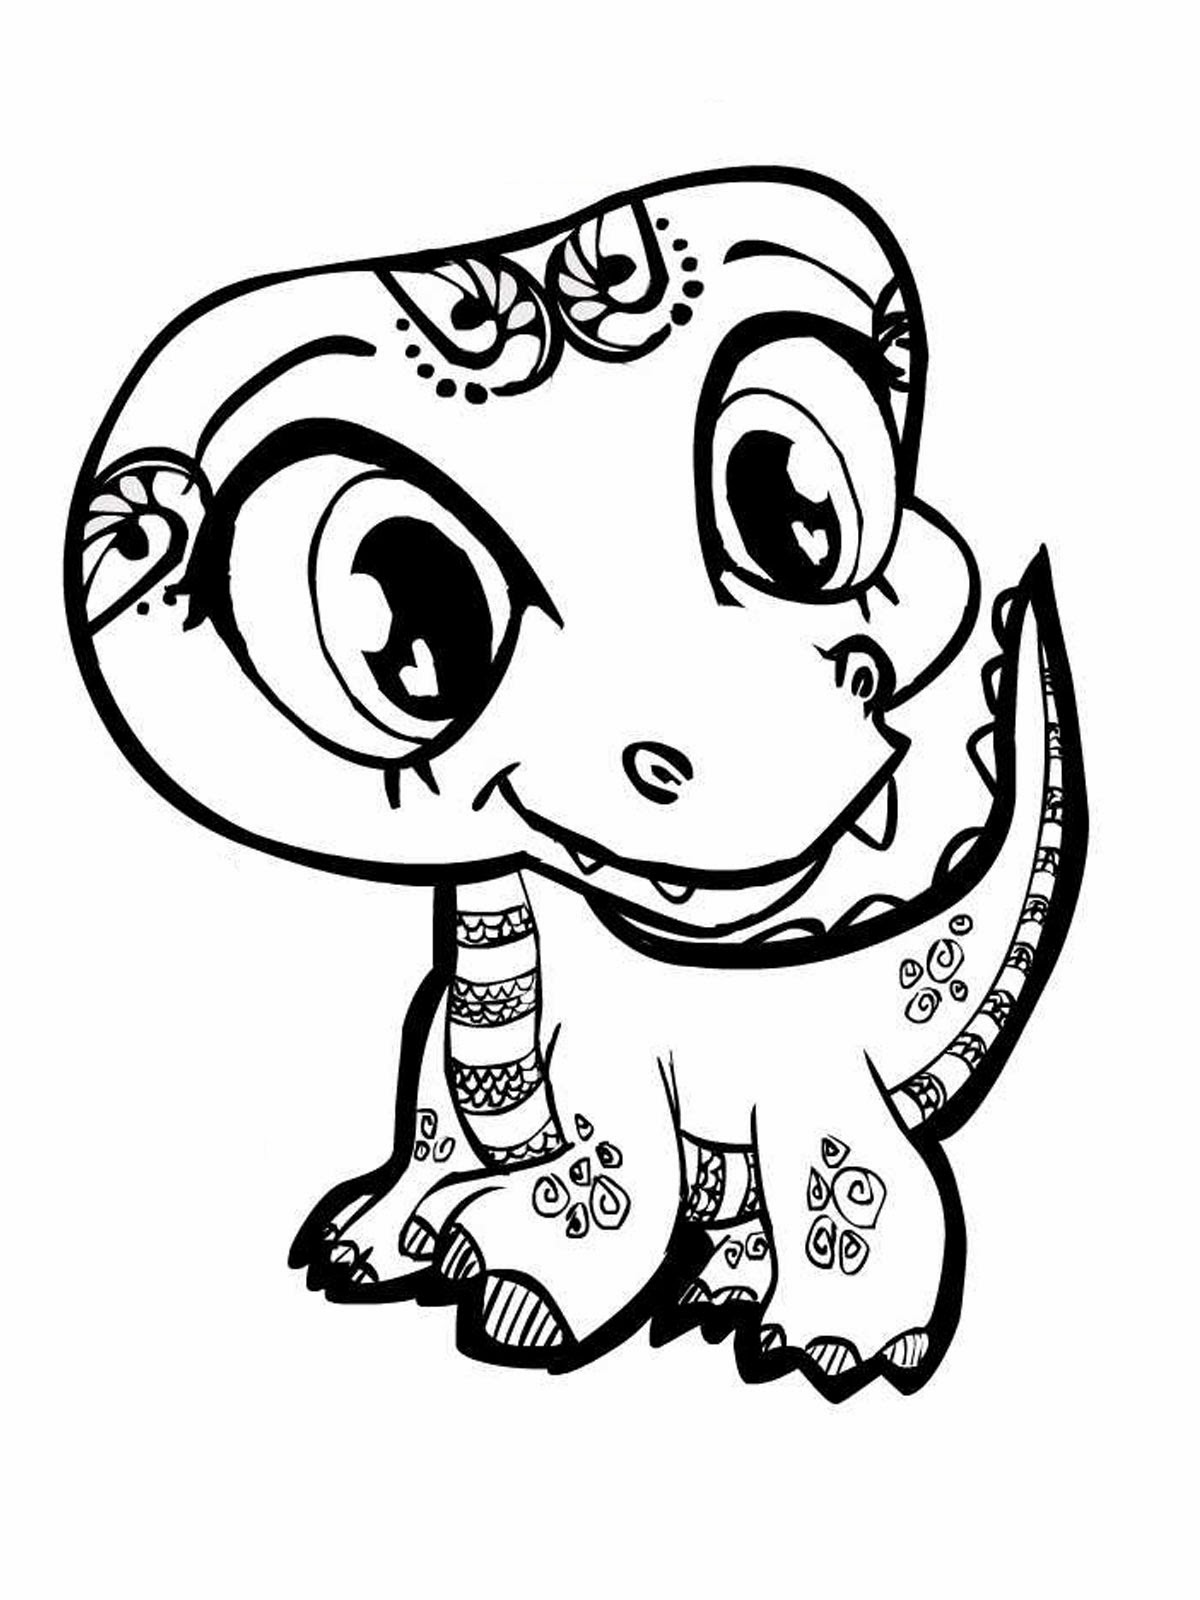 Coloring Pages Squinkie Coloring Pages baby girl coloring pages cute animals page 1 for kids